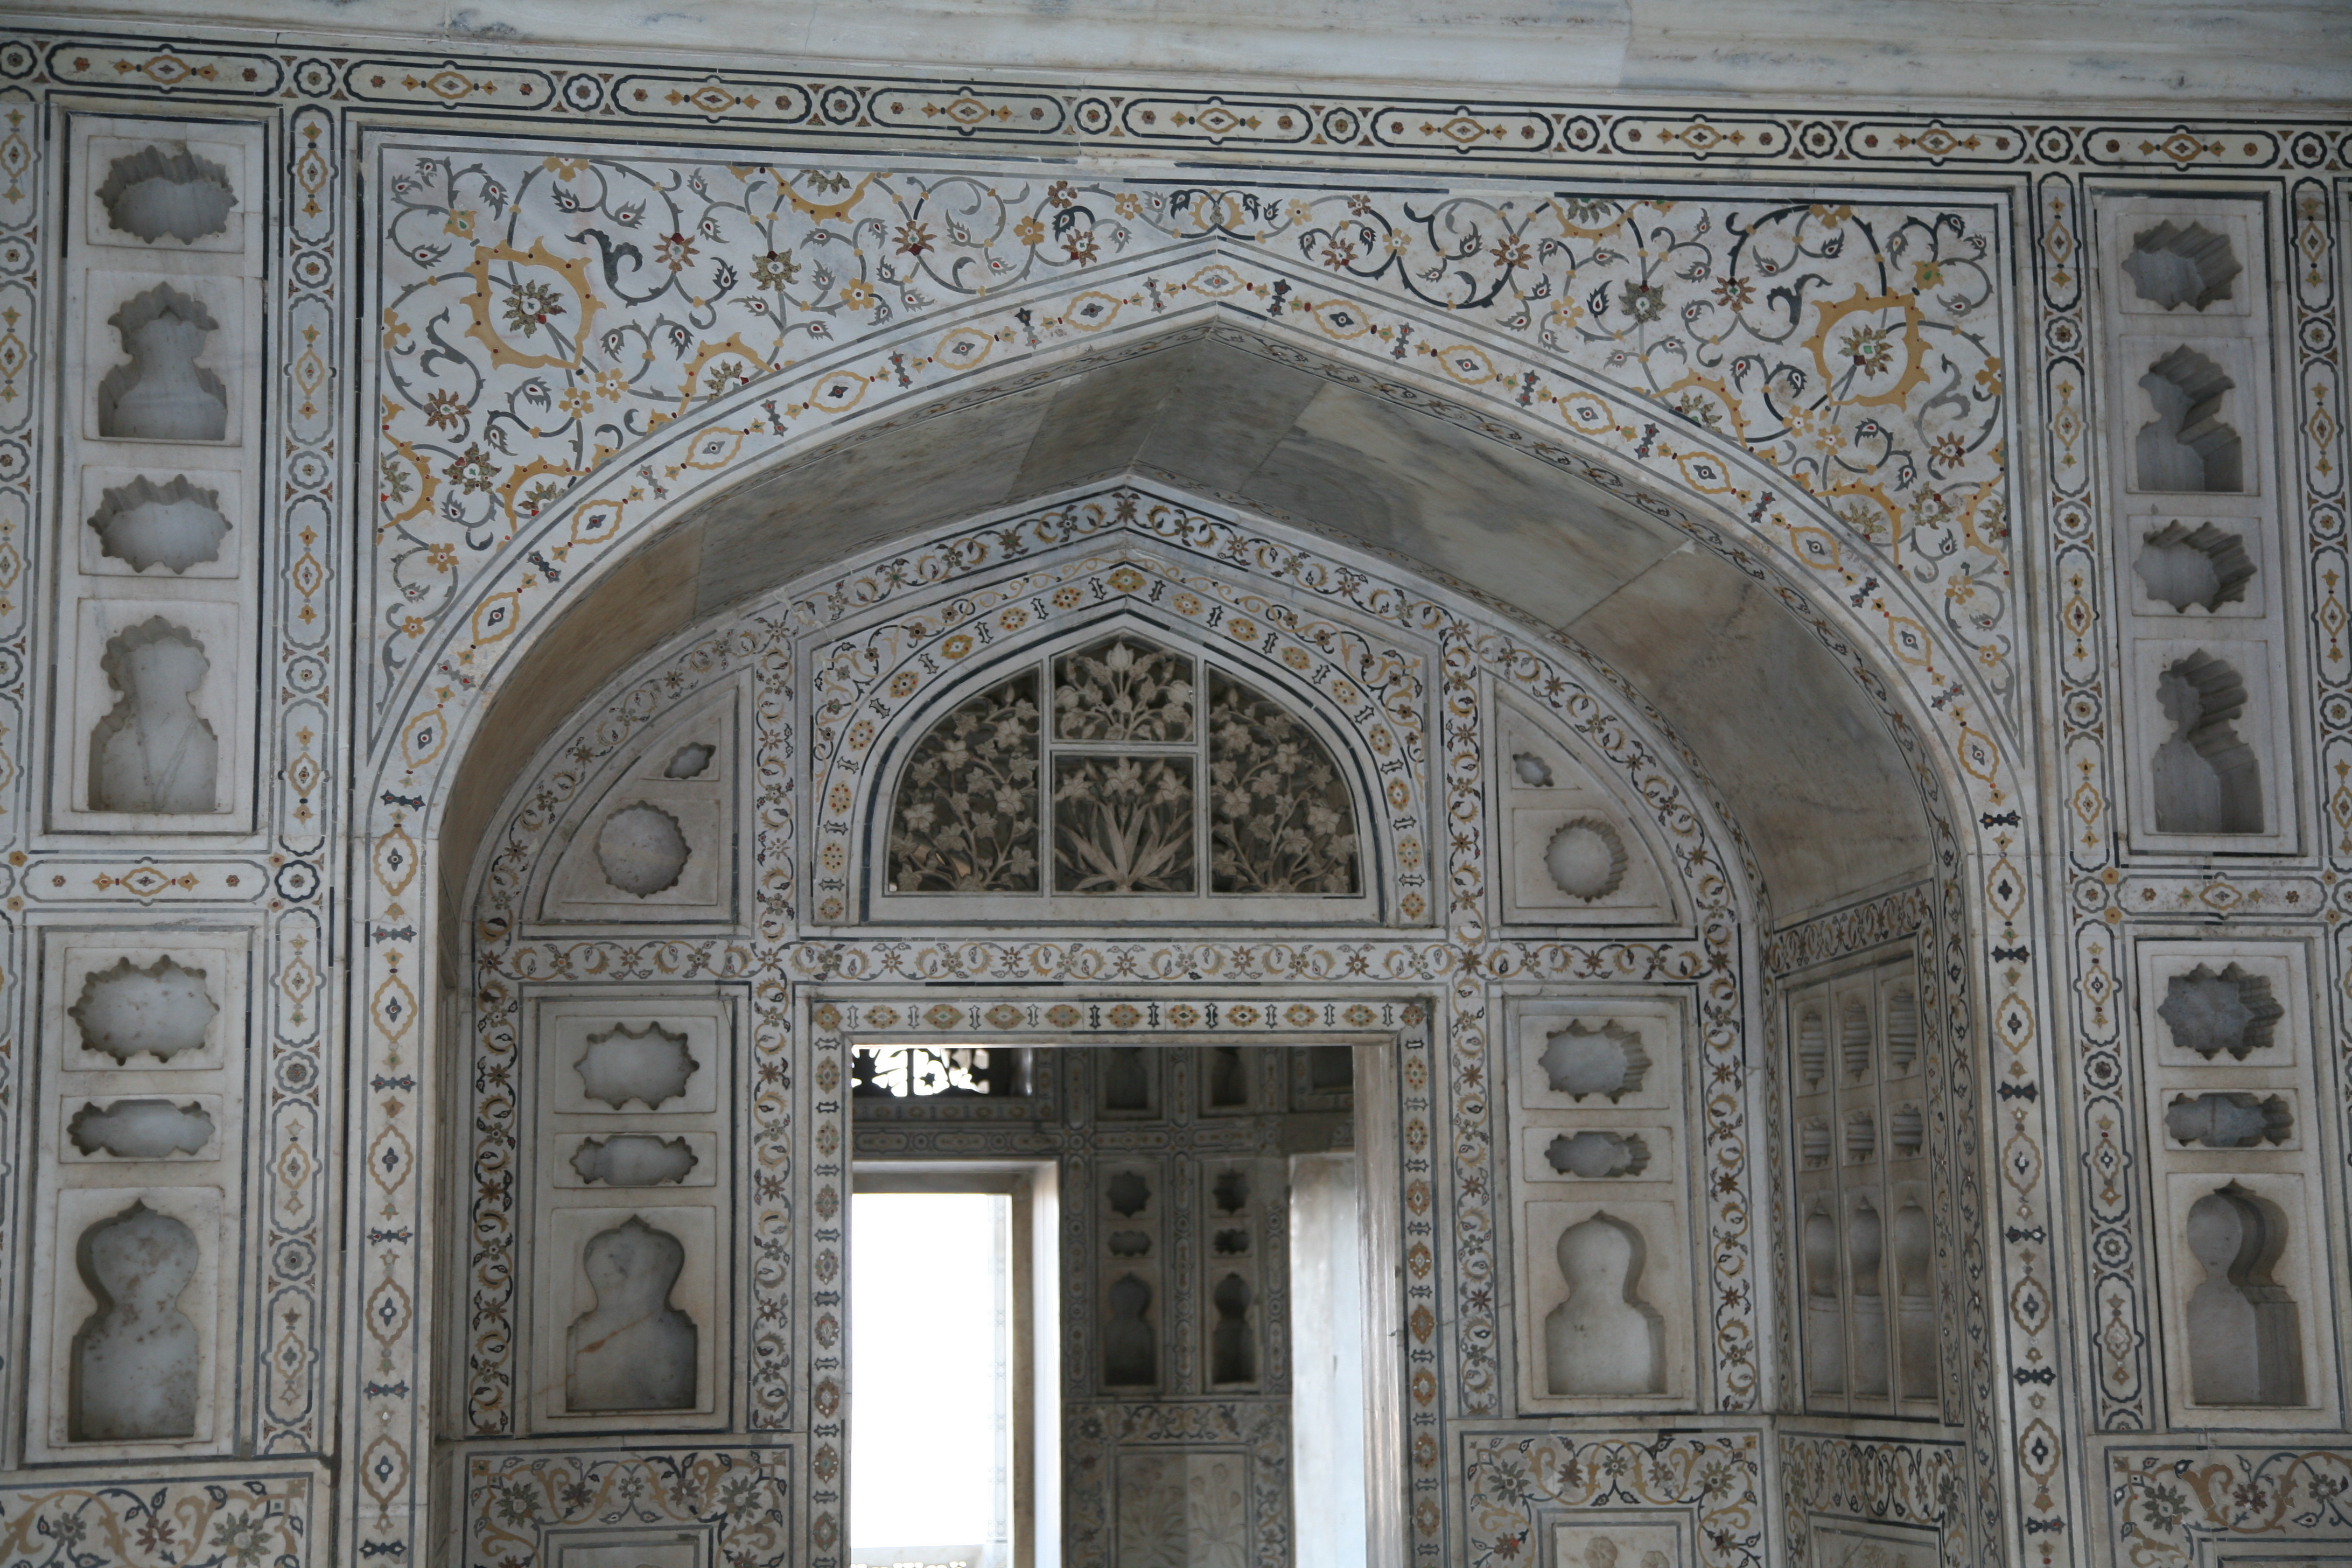 ancient islamic art and architecture